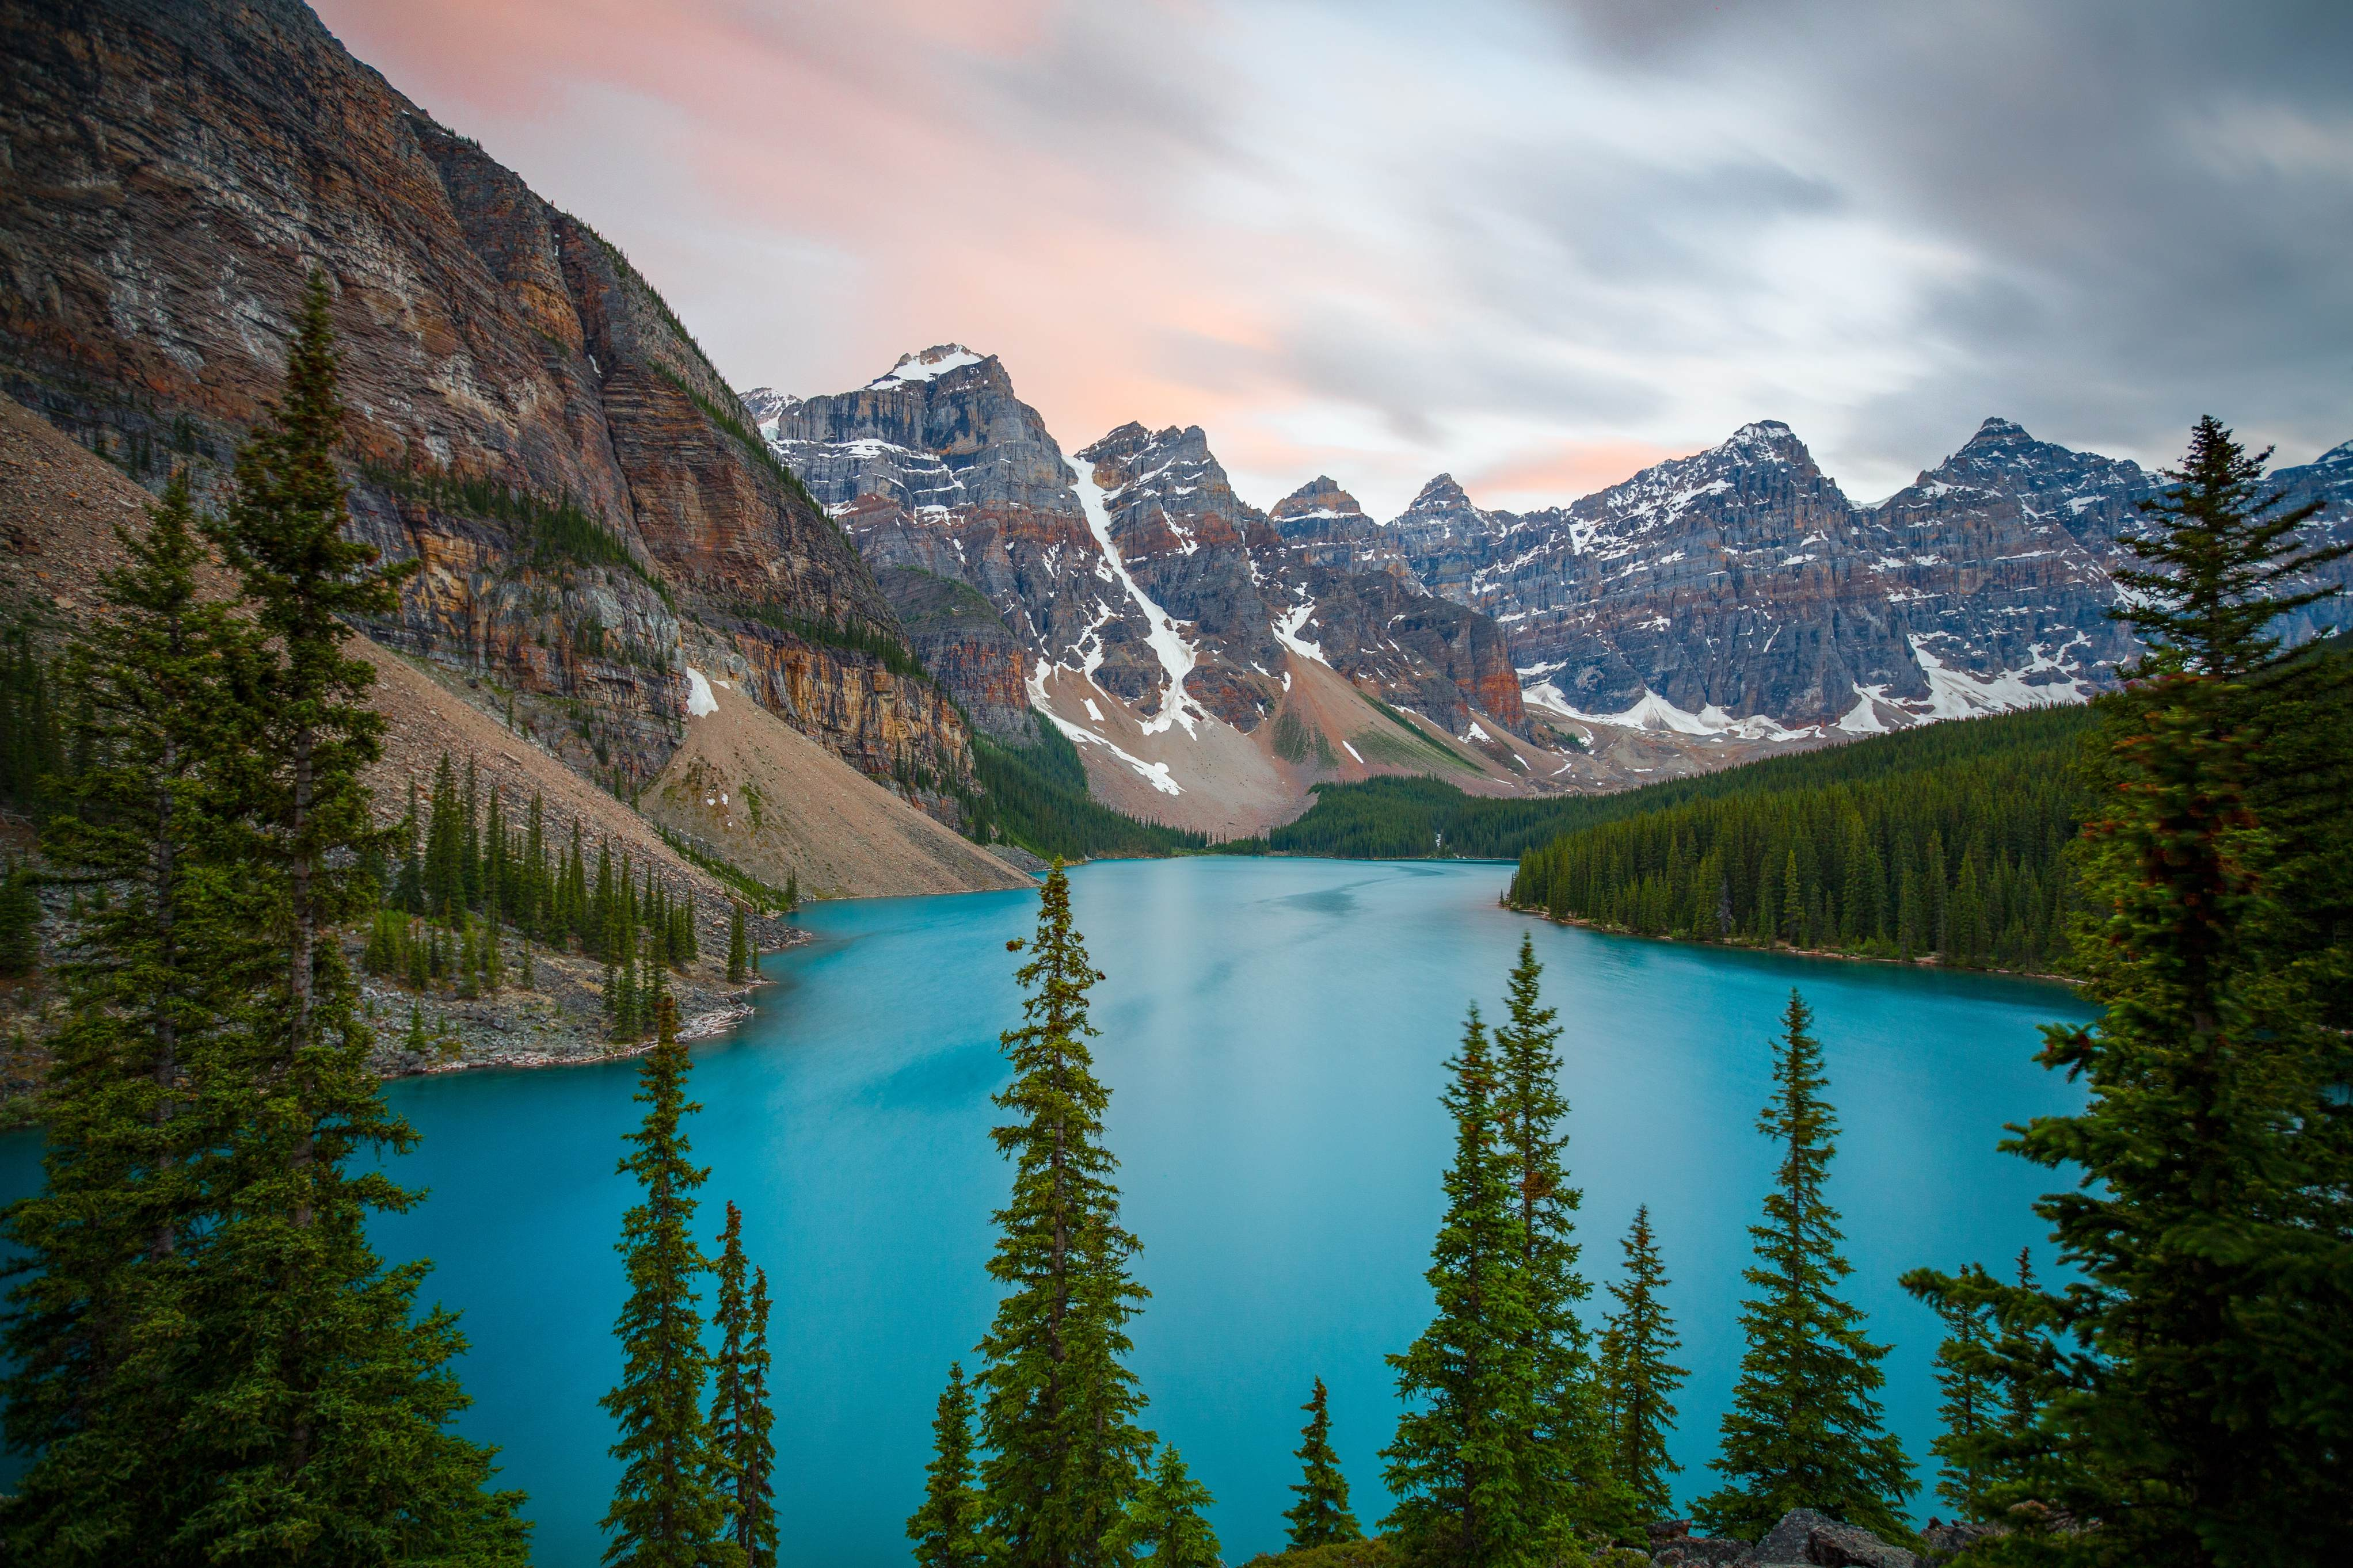 Canadian landscape of mountains and lake